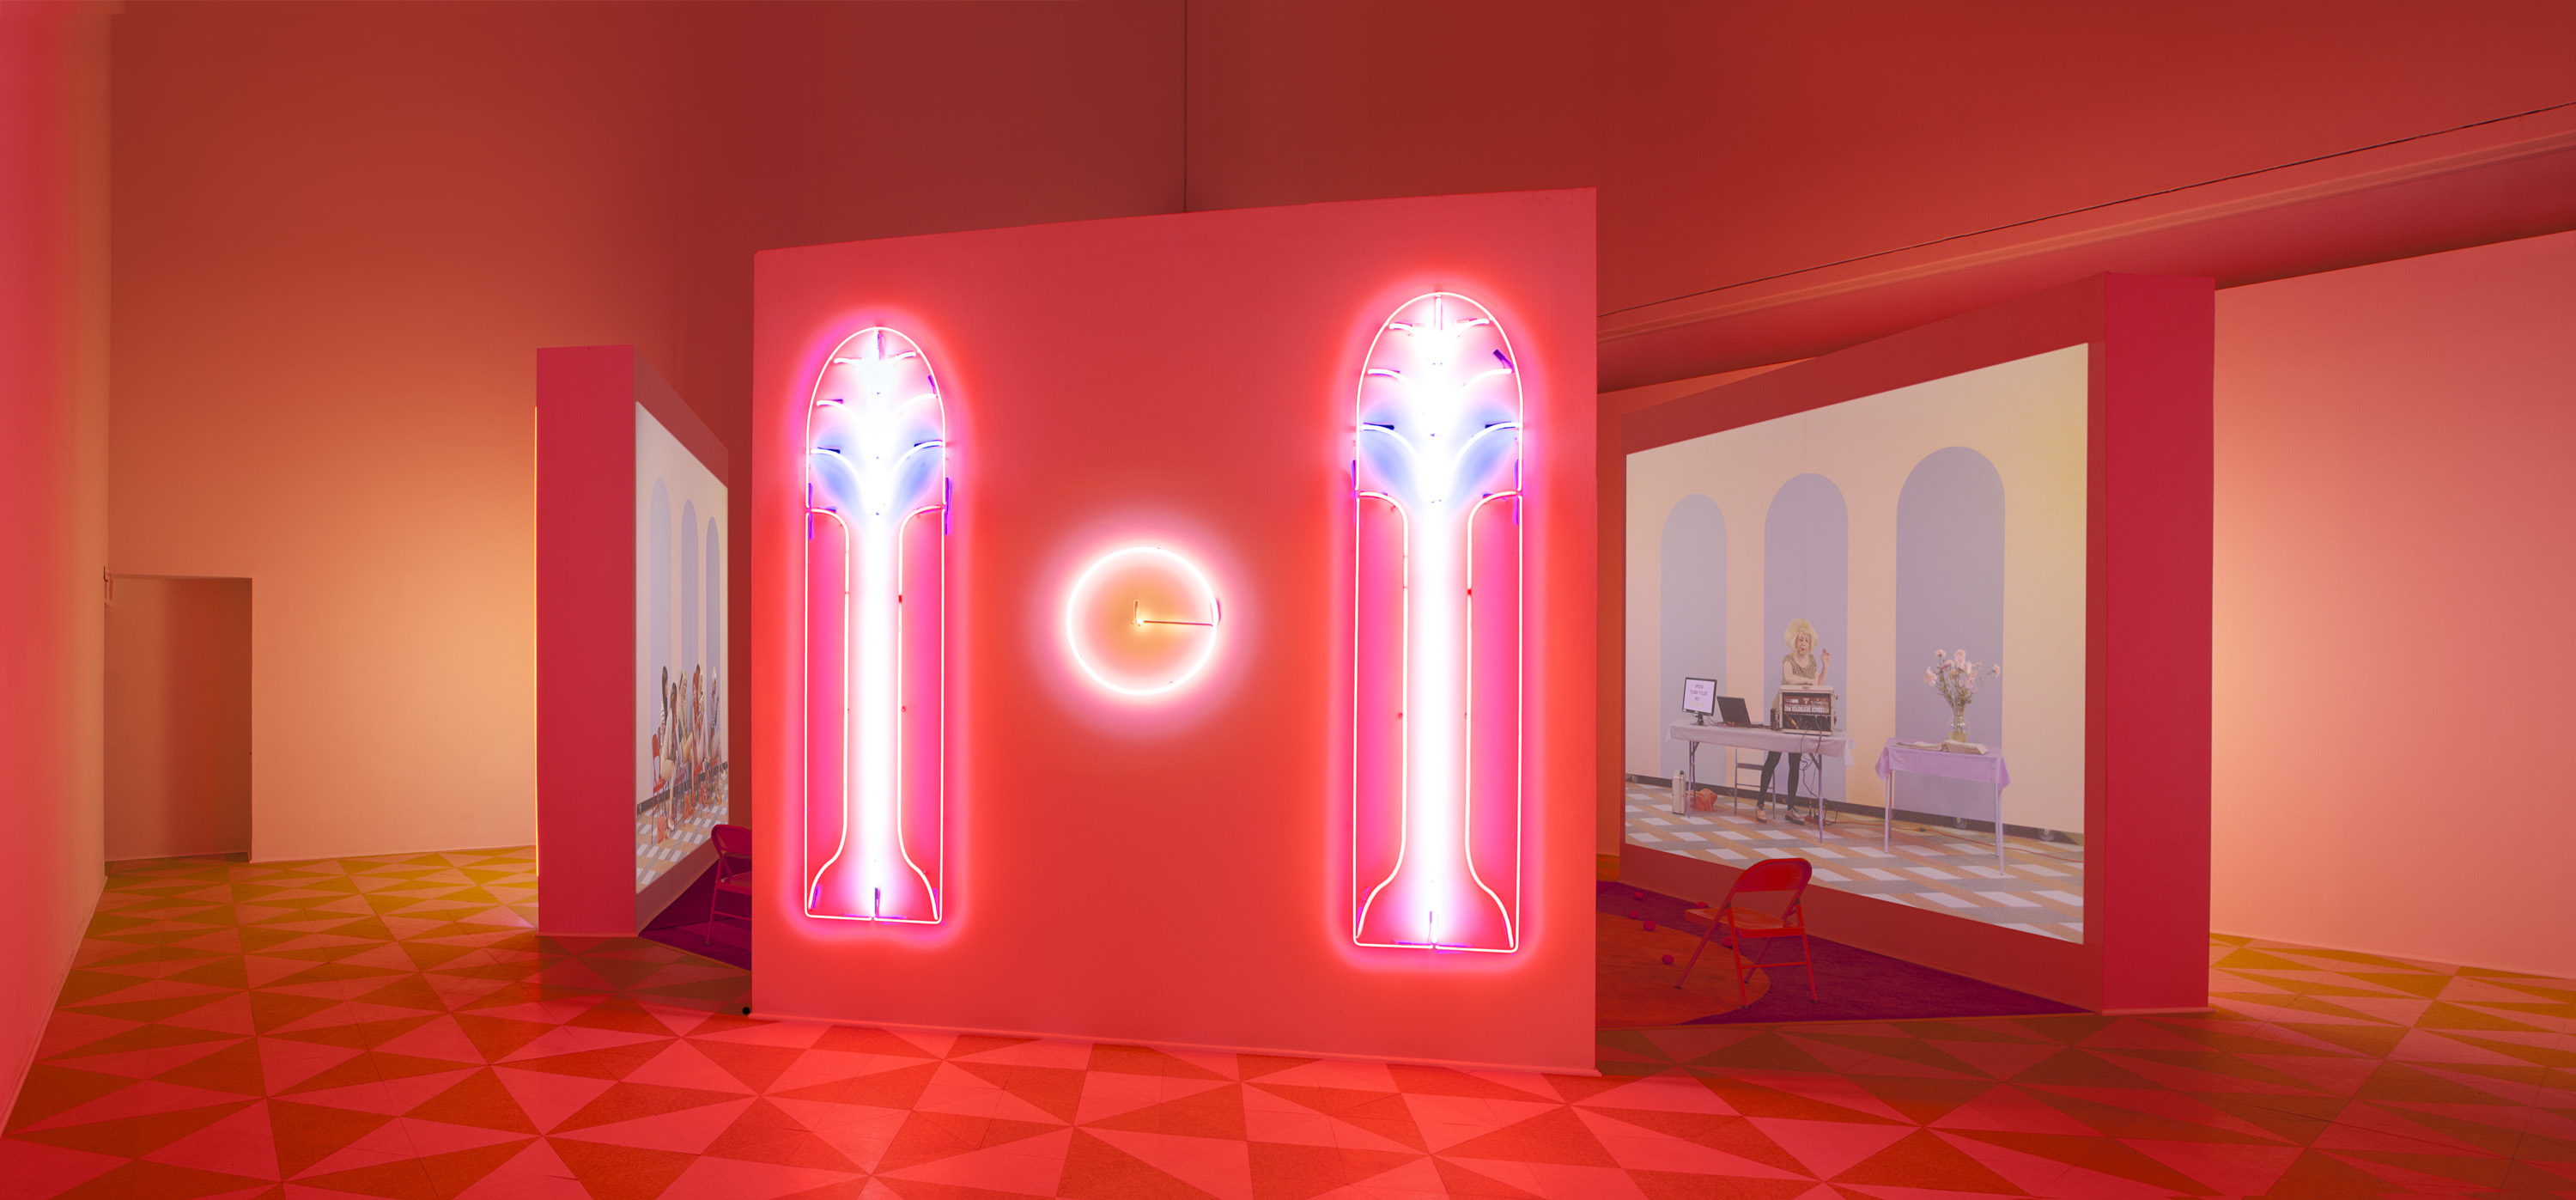 Alex Da Corte (b. 1980) with Jayson Musson (b. 1977), Easternsports, 2014. Four-channel video, color, sound; 152 min., with four screens, neon, carpet, vinyl composition tile, metal folding chairs, artificial oranges, orange scent, and diffusers. Score by Devonté Hynes. Collection of the artists; courtesy David Risley Gallery, Copenhagen, and Salon 94, New York. Installation view, Institute of Contemporary Art, University of Pennsylvania, 2014 © Alex Da Corte; image courtesy the artist and Institute of Contemporary Art, University of Pennsylvania